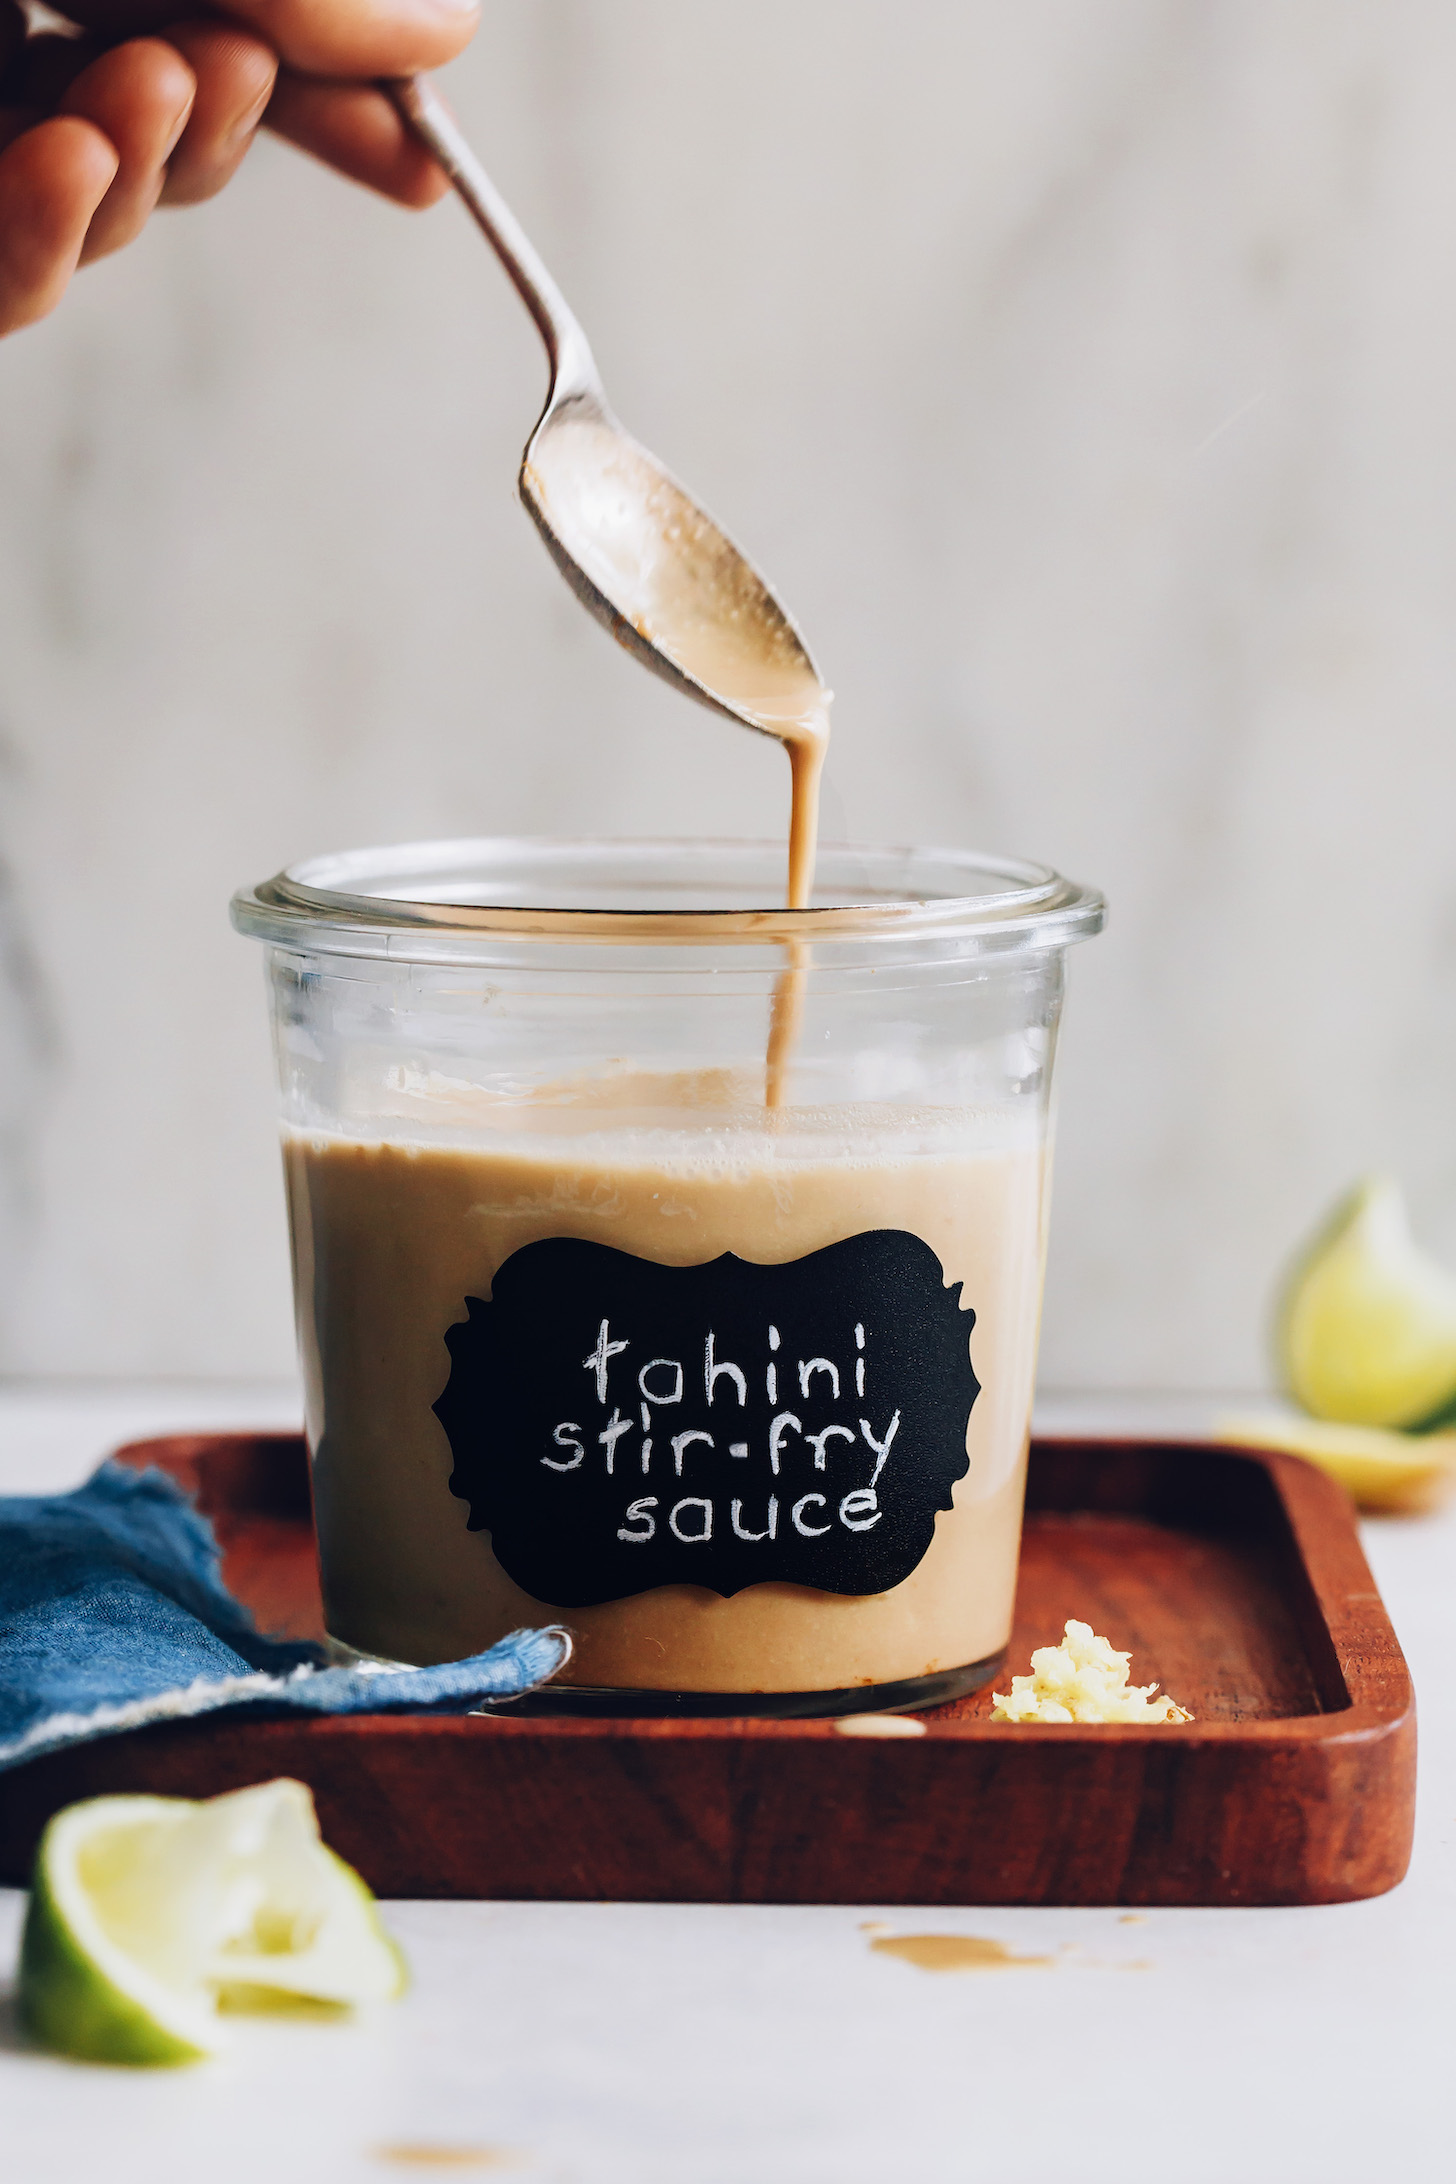 Jar and spoonful of our easy stir fry sauce made with tahini